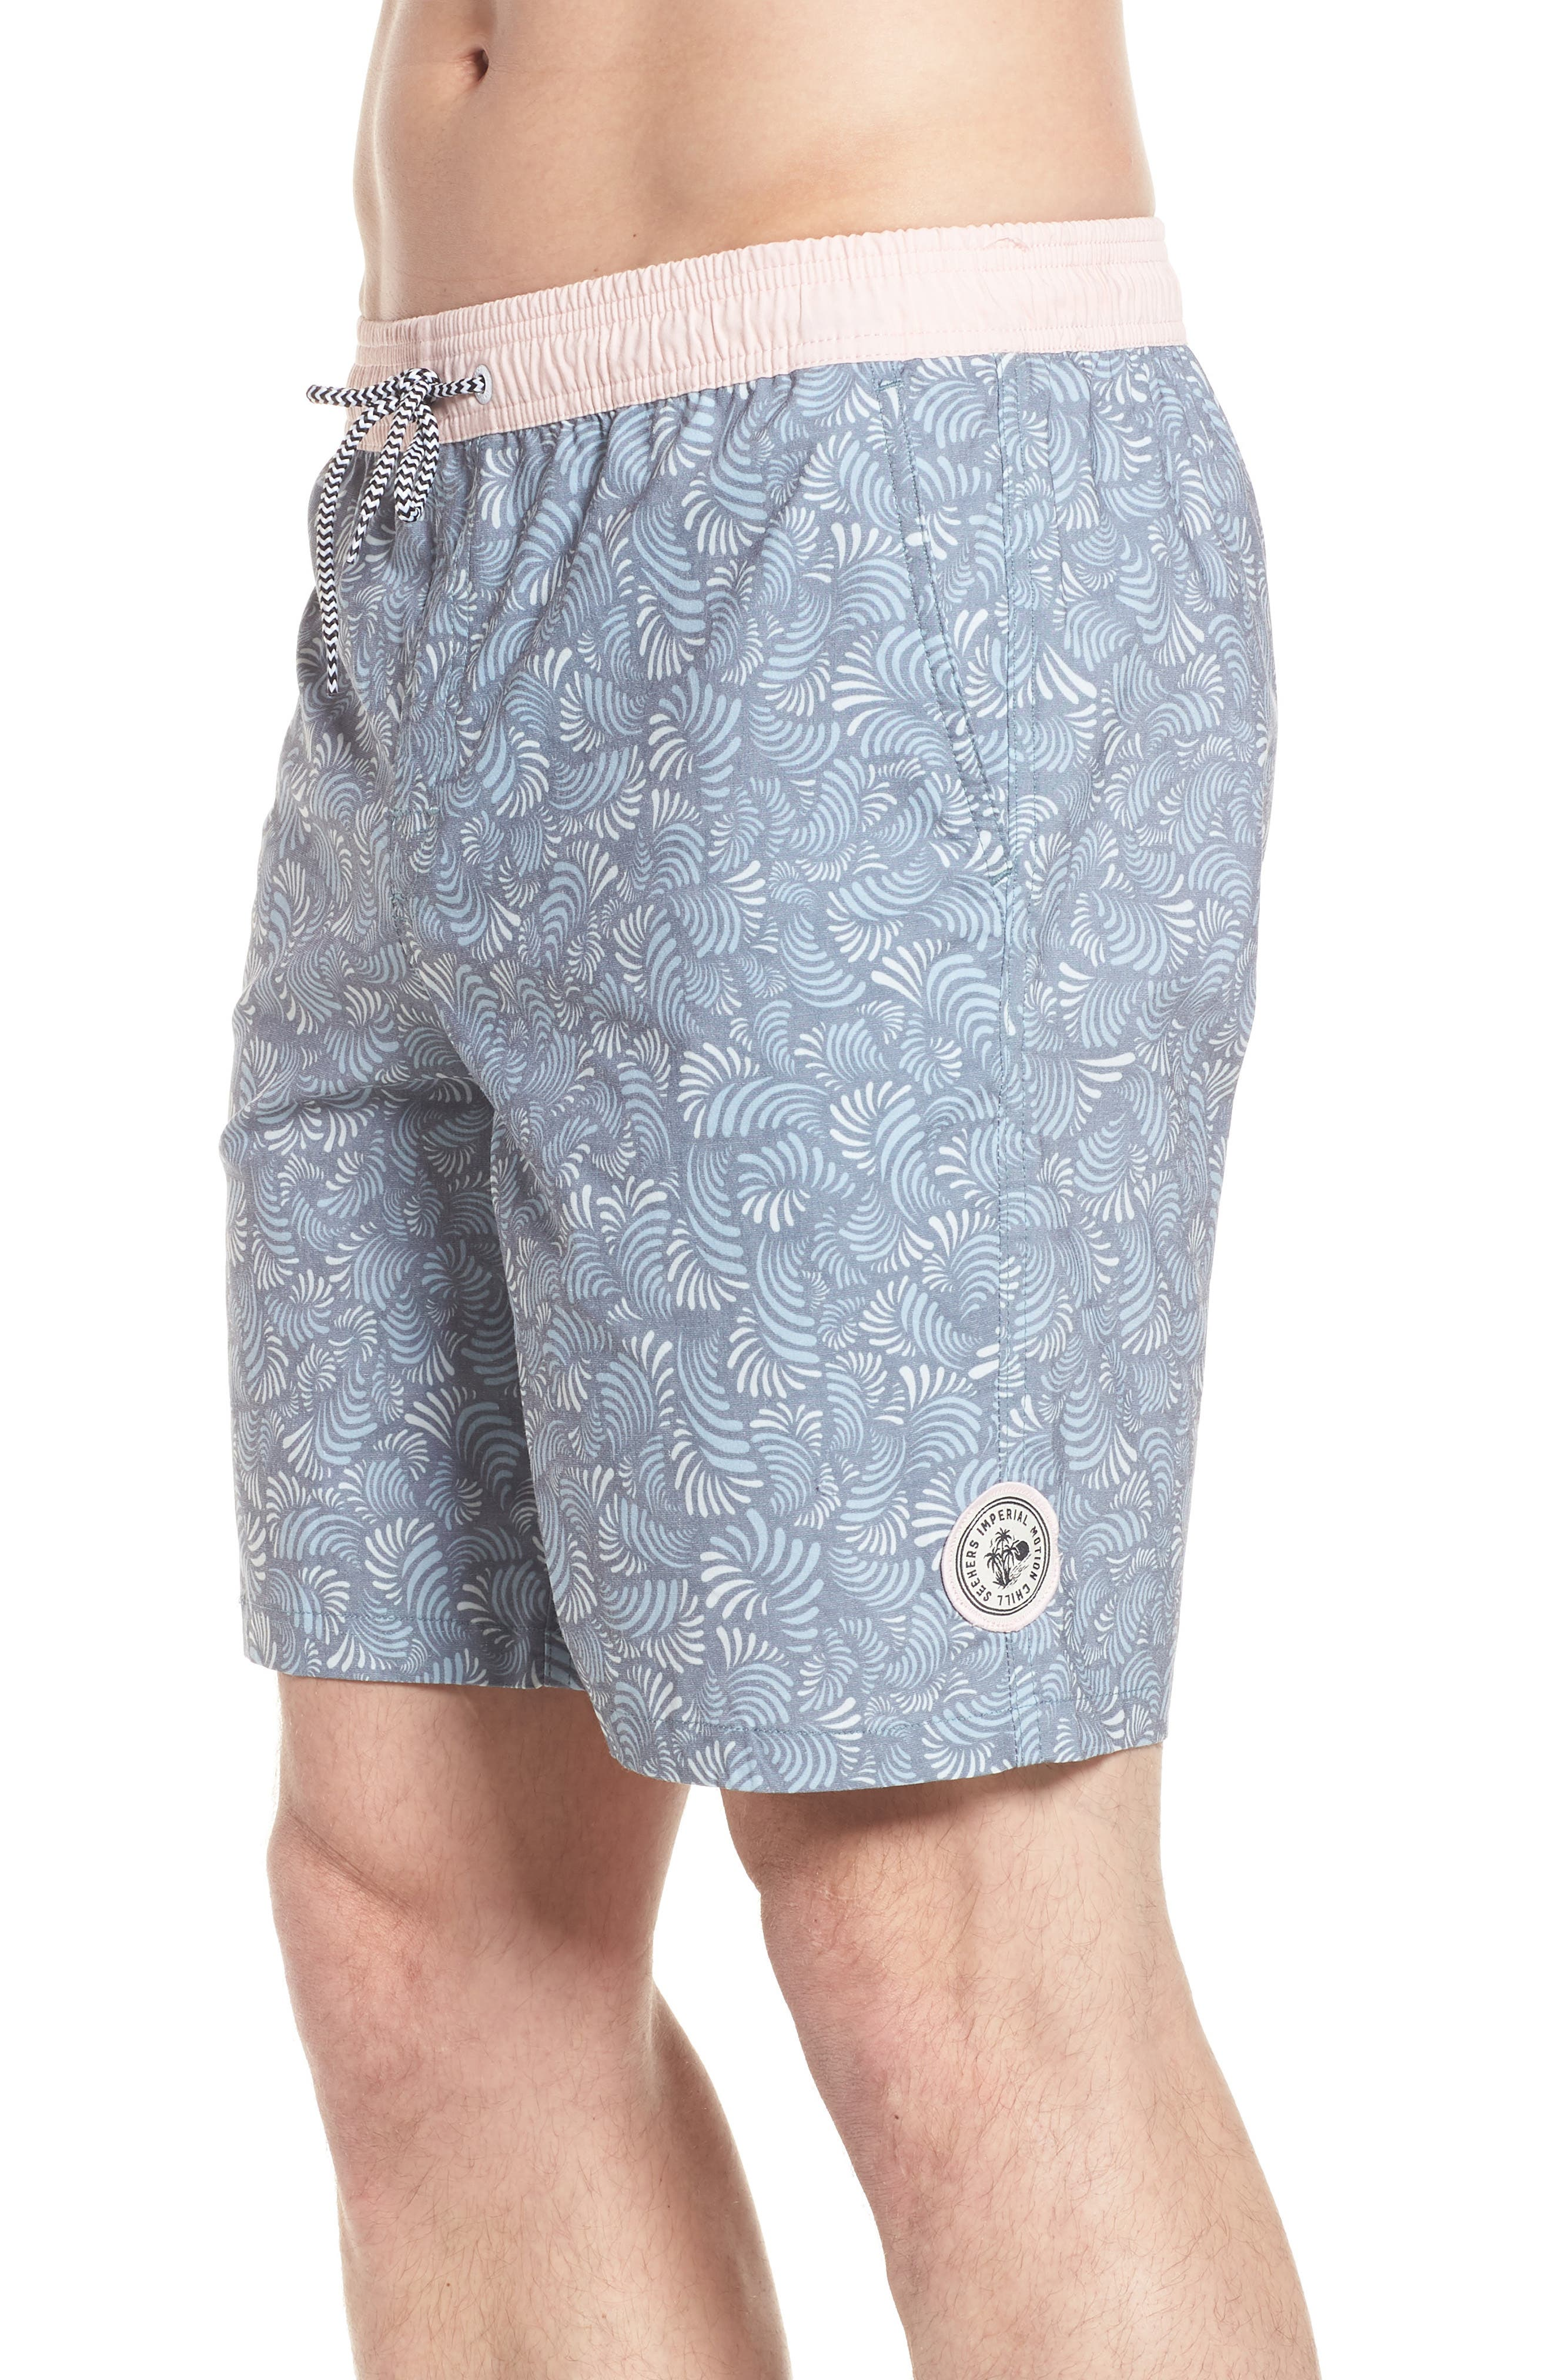 Hayworth Mix Board Shorts,                             Alternate thumbnail 3, color,                             Light Pink/ Blue